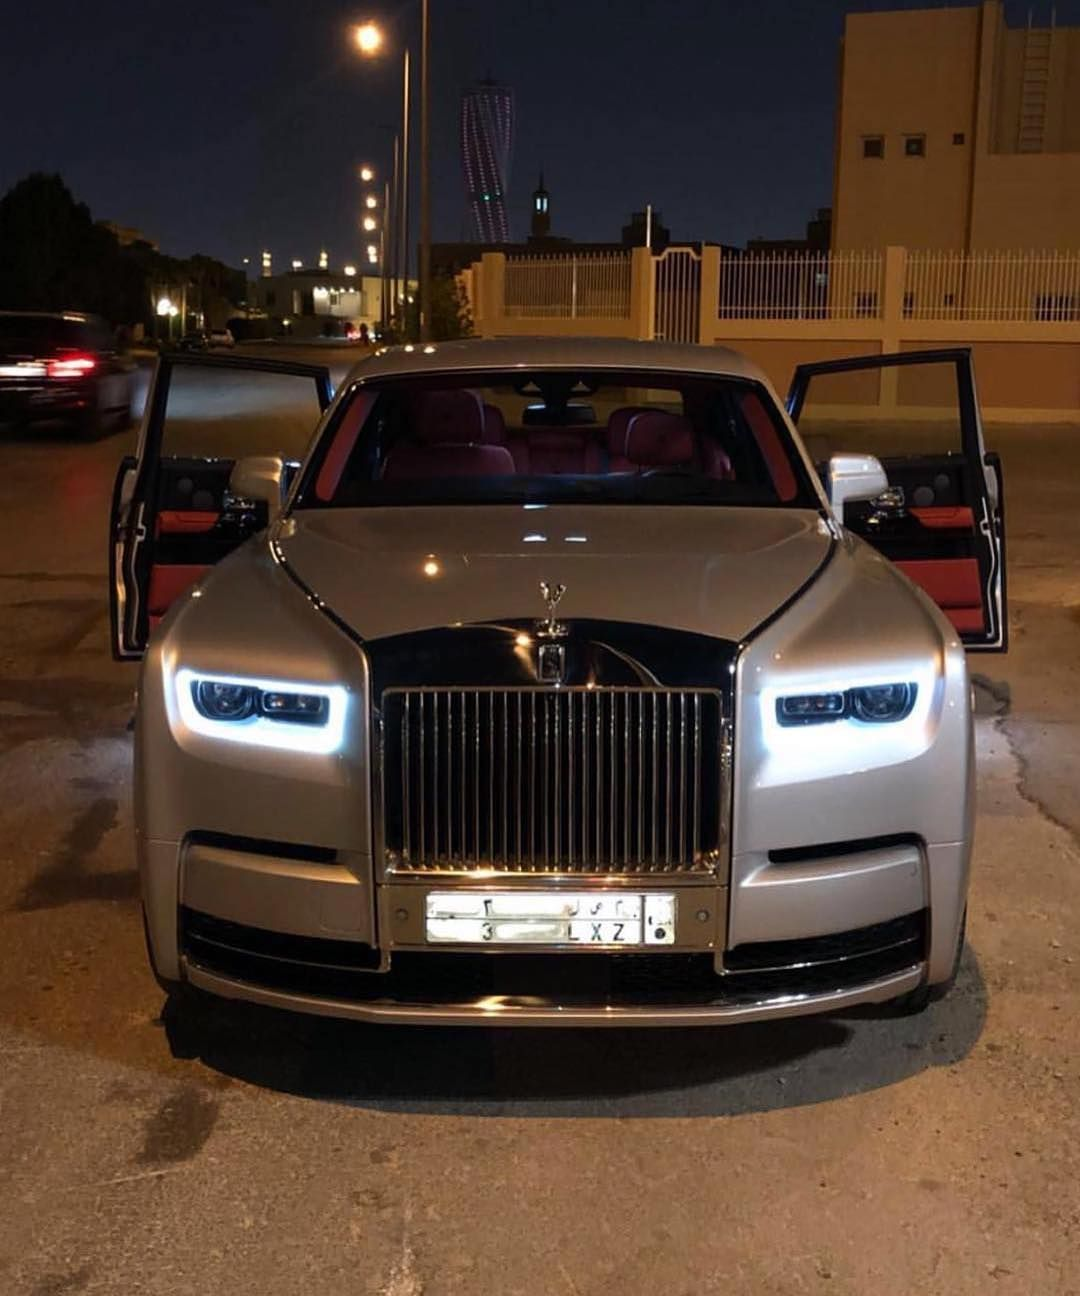 Supercar Duo Luxurycorp Rollsroyce: Rolls Royce Phantom Image By KXNG LOSO On Billionaires